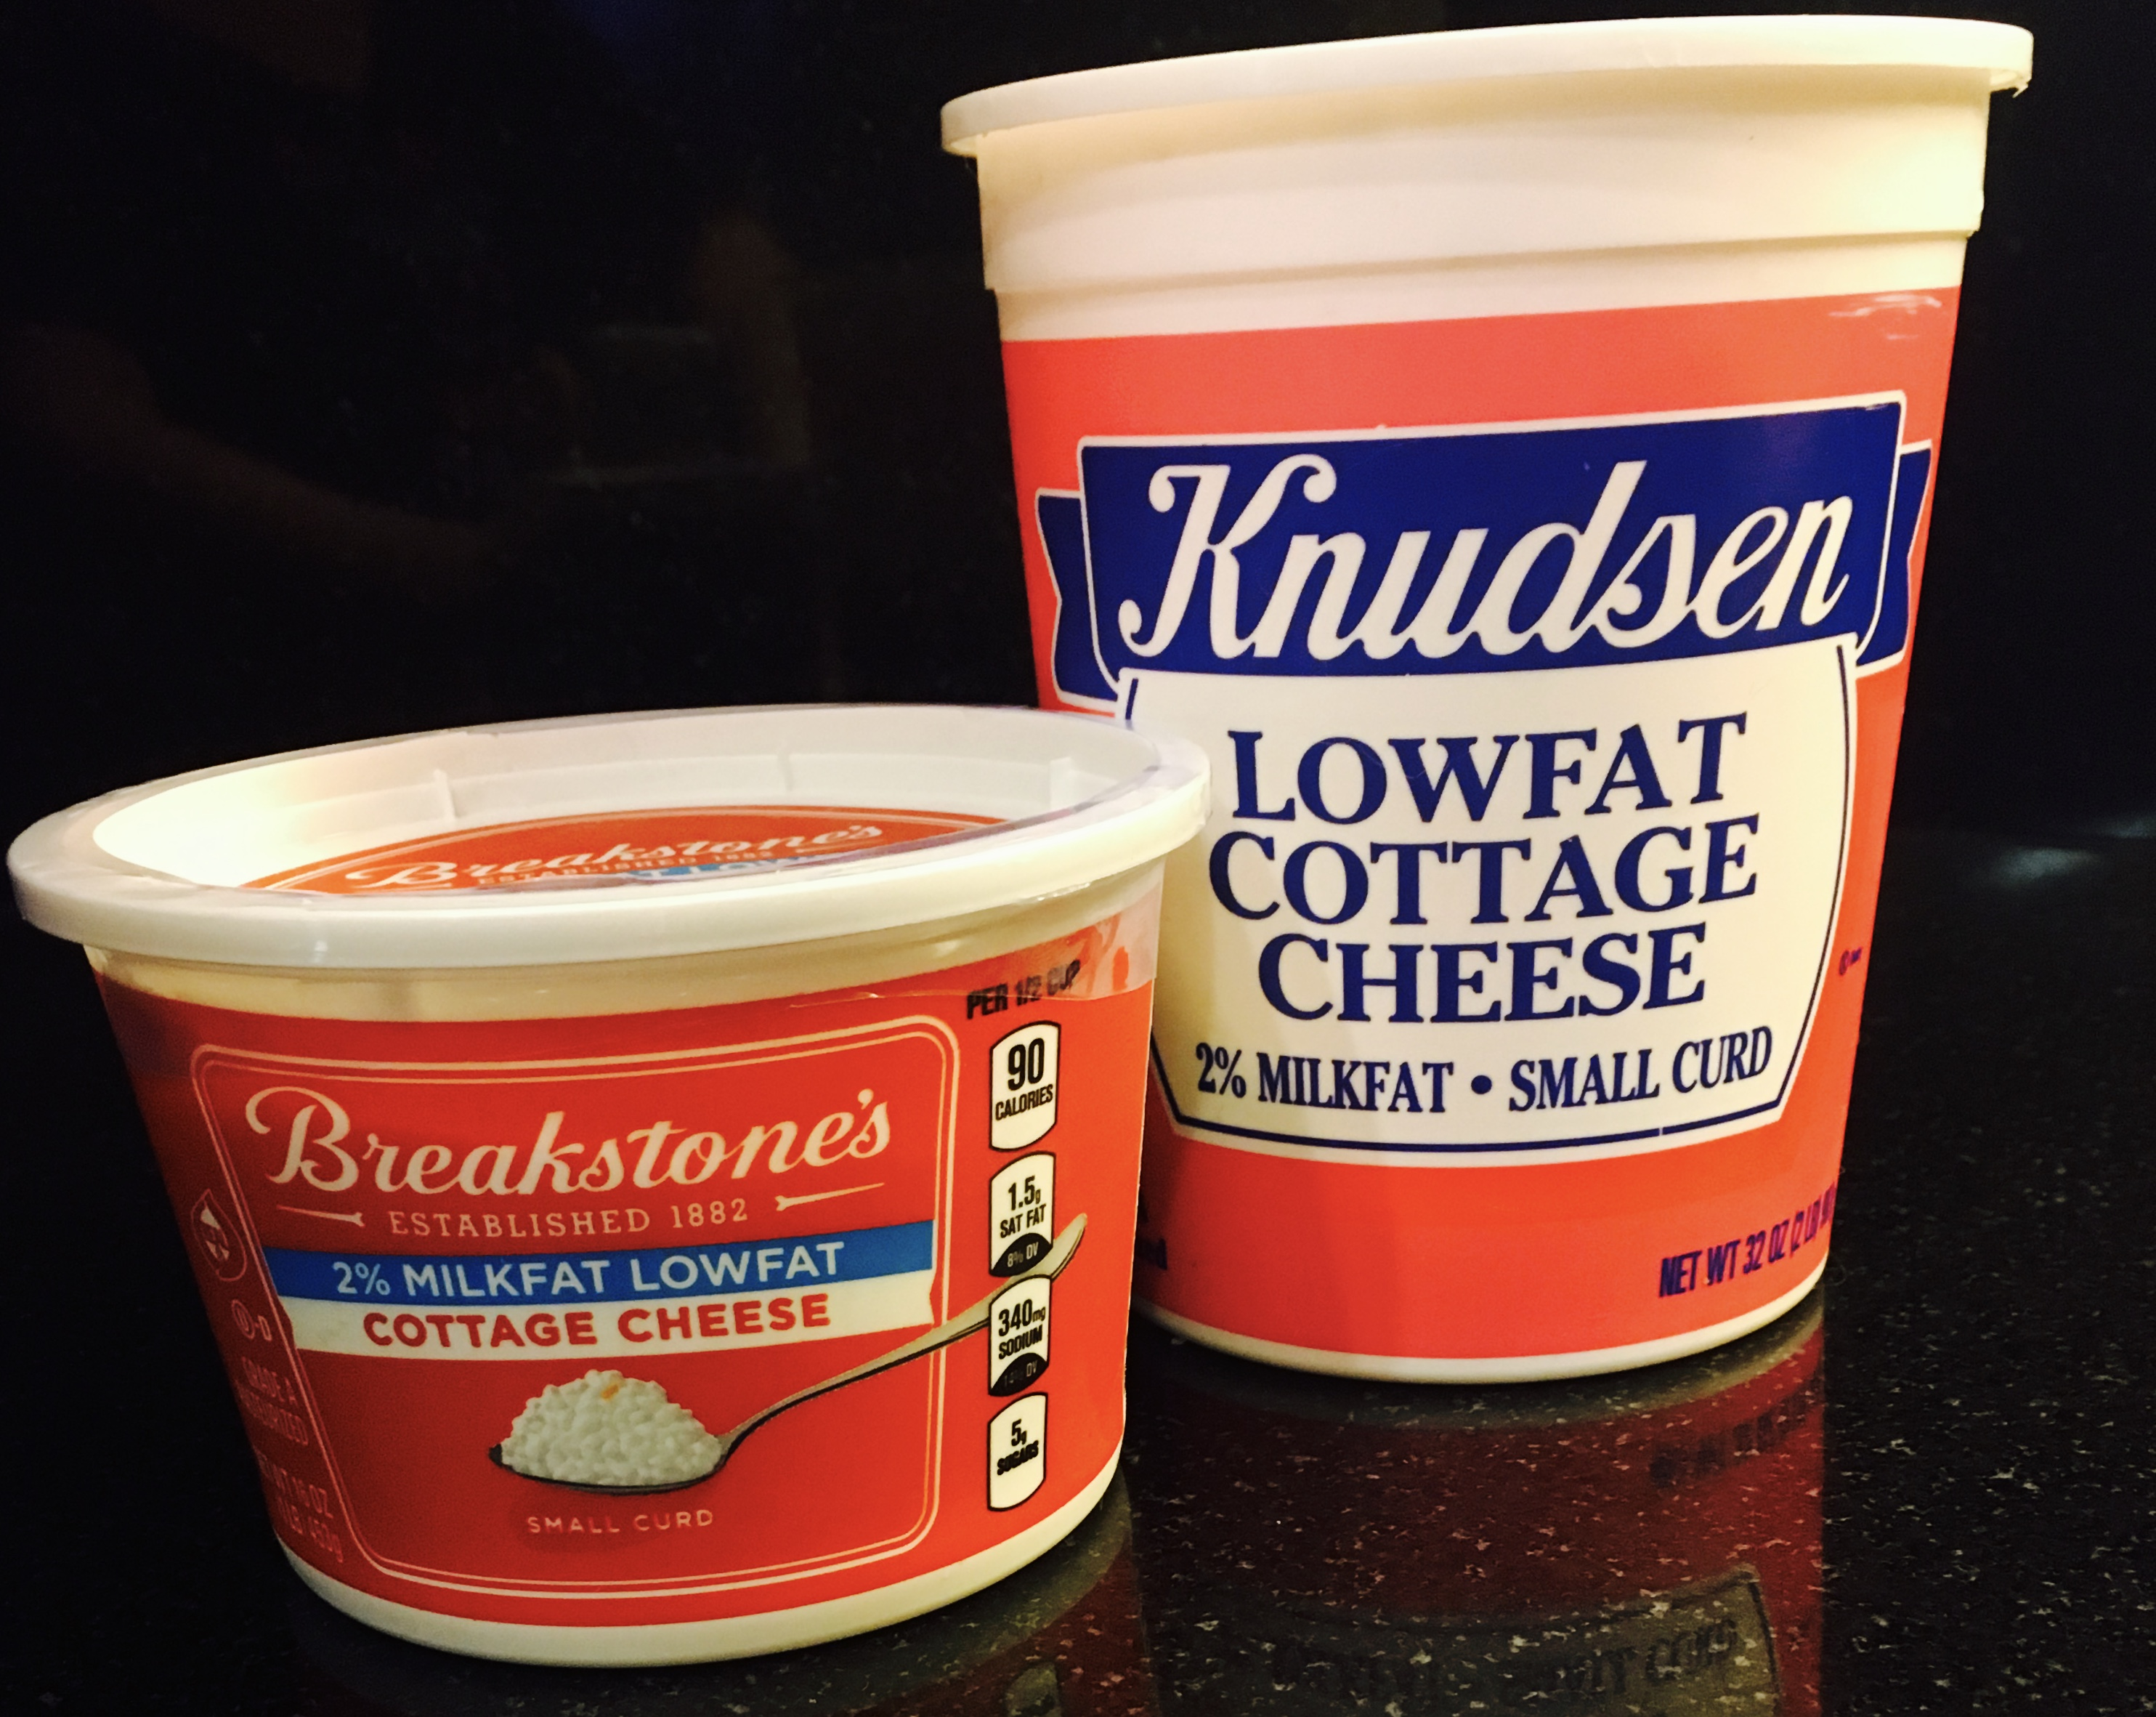 If You Live In The East, South East, Or Mid  Western Parts Of U.S. The Big  Name Brand For Cottage Cheese And Other Dairy Items Is Breakstoneu0027s.